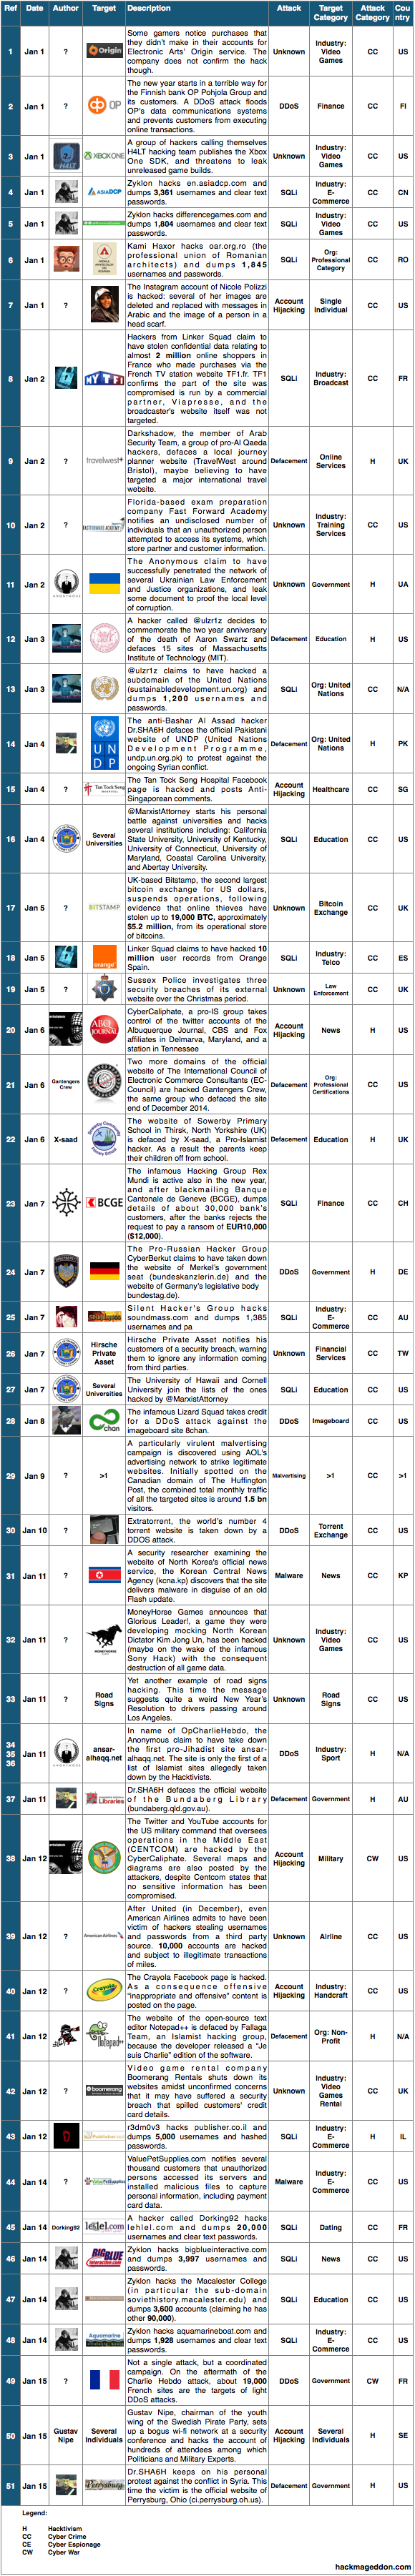 1-15 Jan 2015 Cyber Attacks Timeline